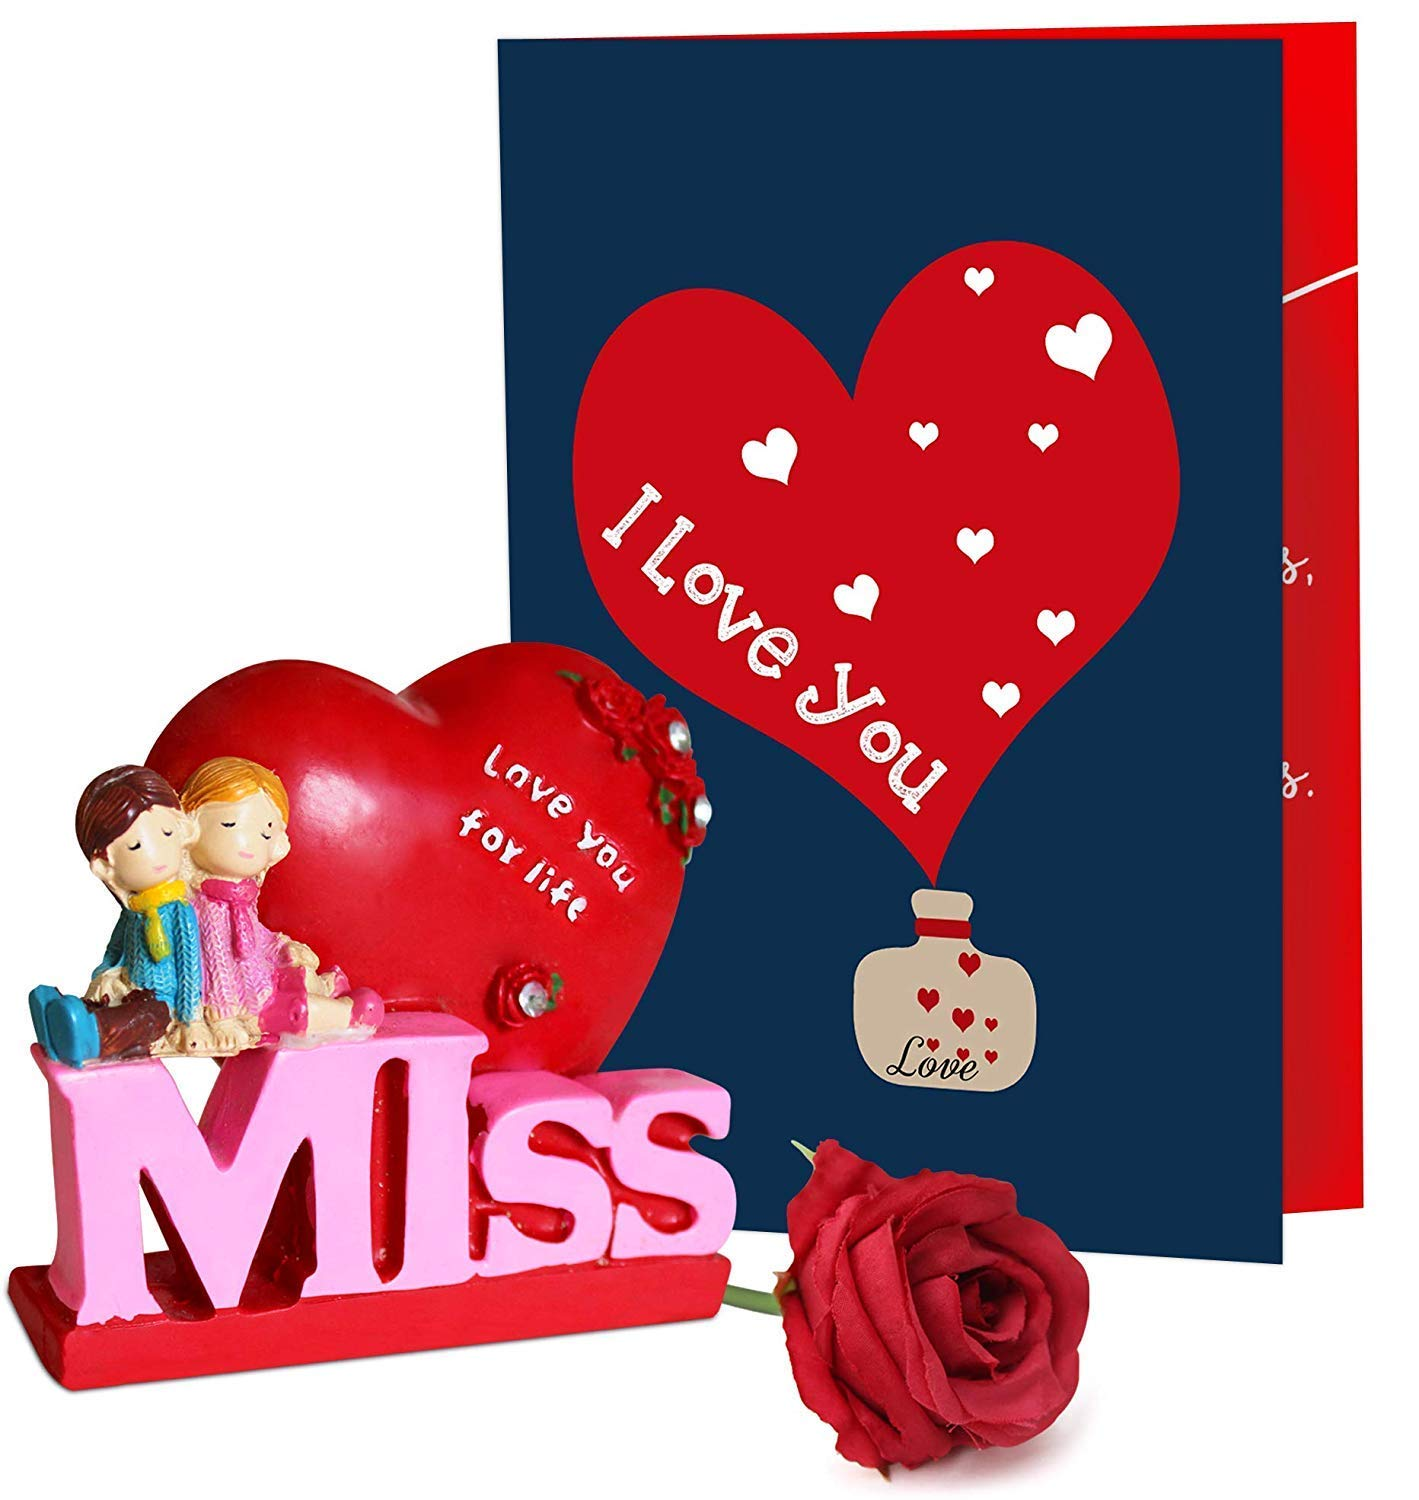 Buy Tied Ribbons Valentine Day Gift For Husband Wife Girlfriend Boyfriend Girls Boys Valentines Special Couple Showpiece On Bench Online At Low Prices In India Amazon In